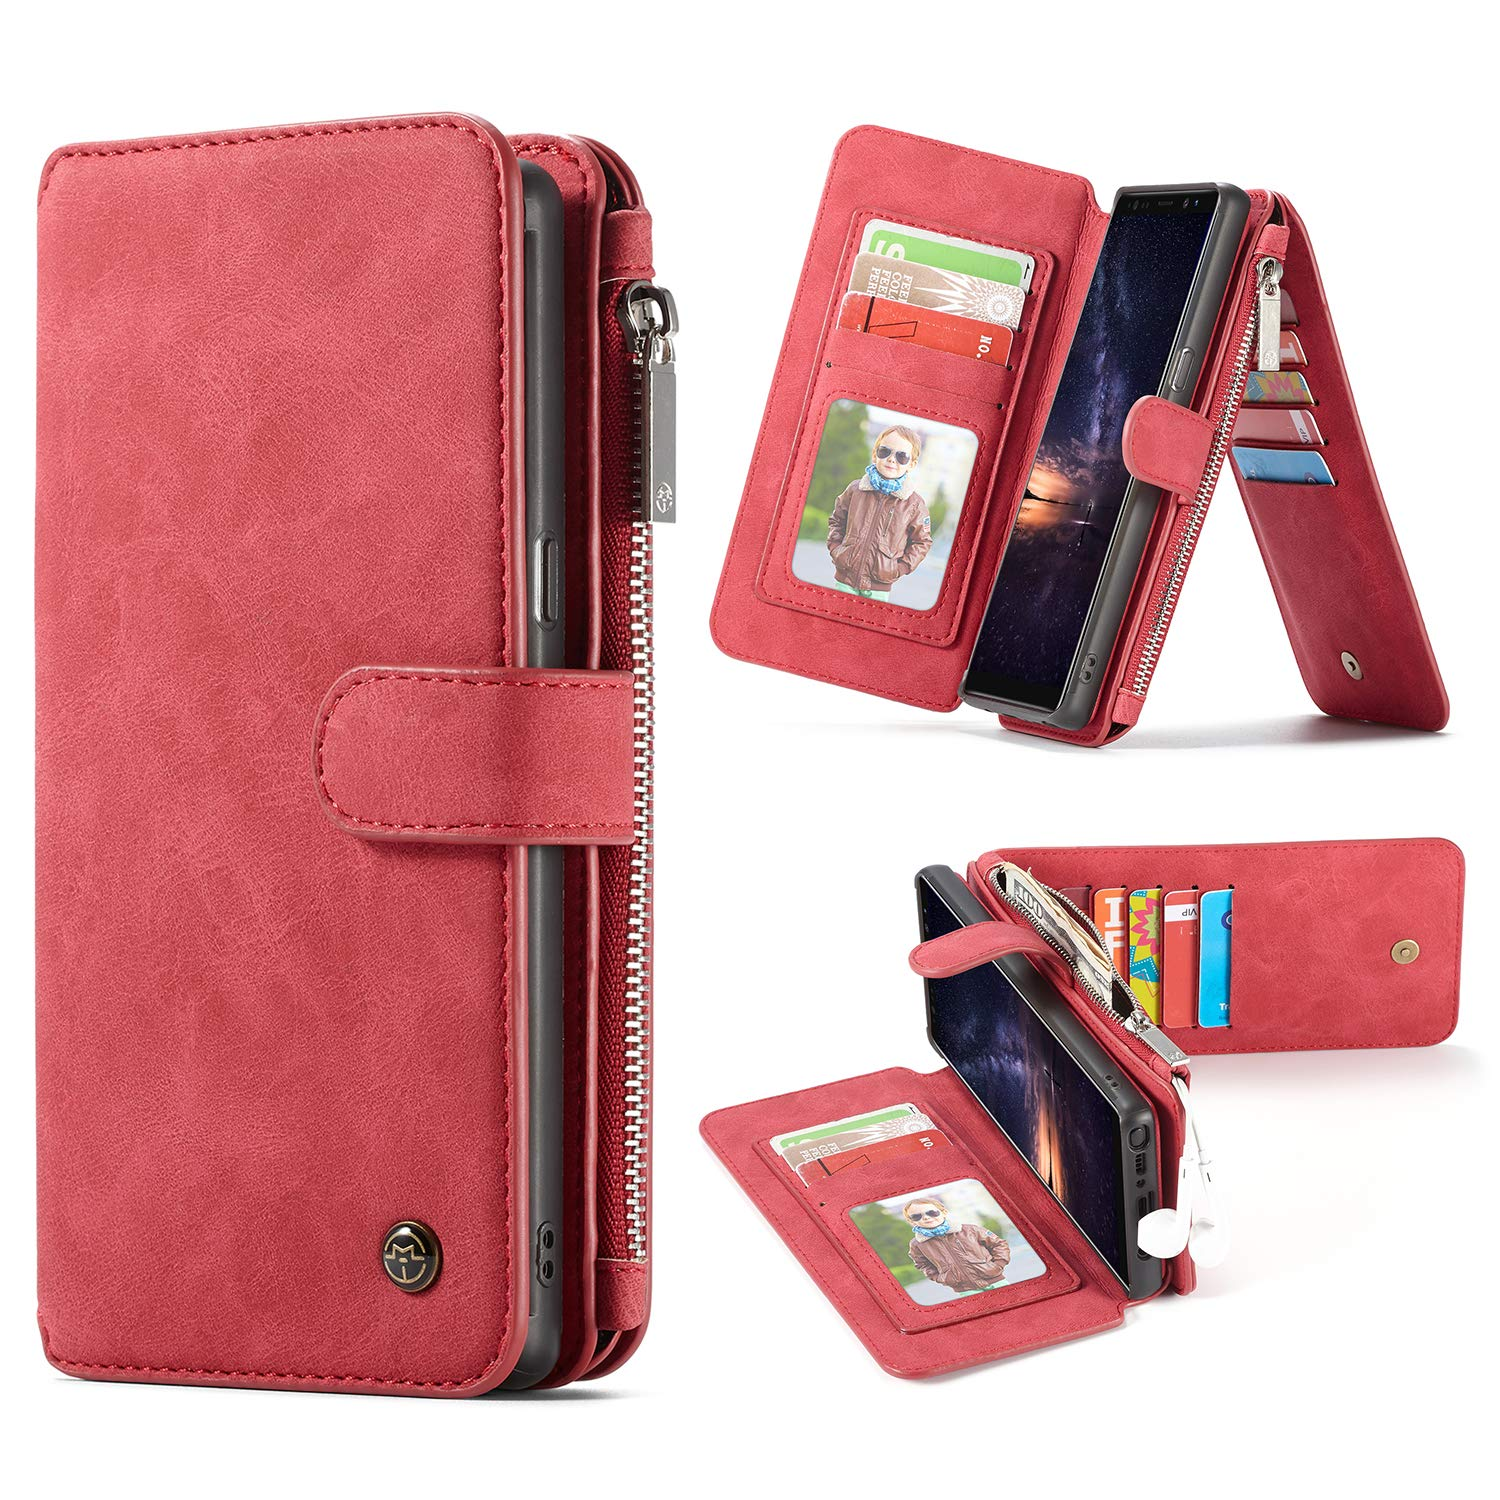 hot sale online 0a317 8b29a Amazon.com: Samsung Galaxy Note 9 Wallet Case, Edauto 2 in 1 Leather ...